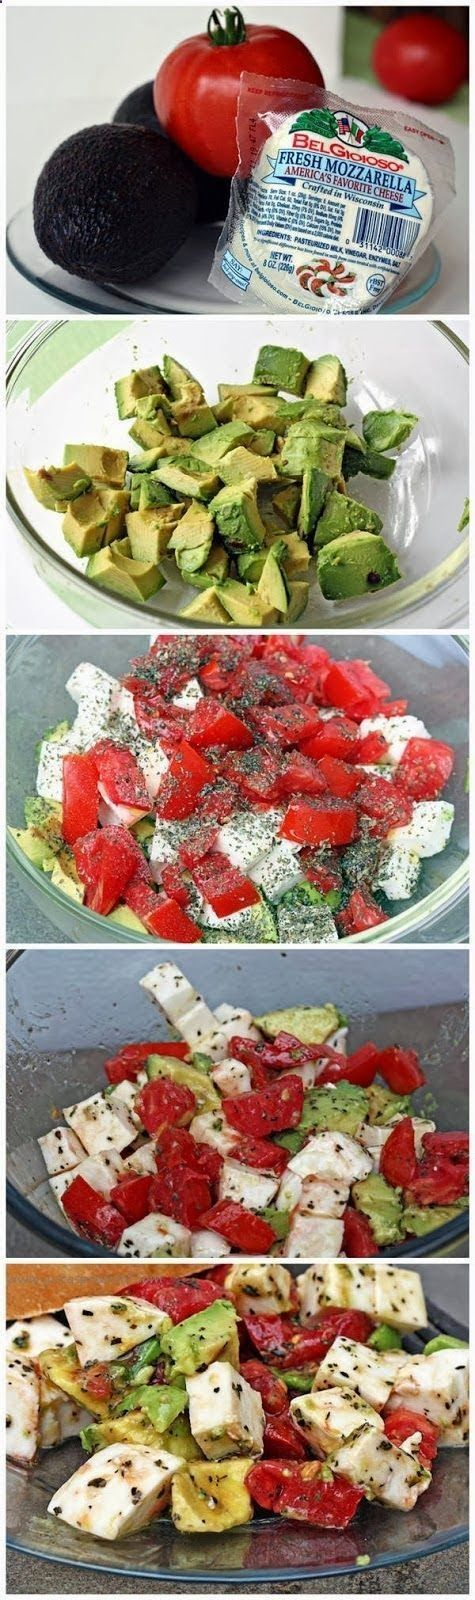 Mozzarella Salad with Avocado and Tomato. Perfect side or bedtime snack.